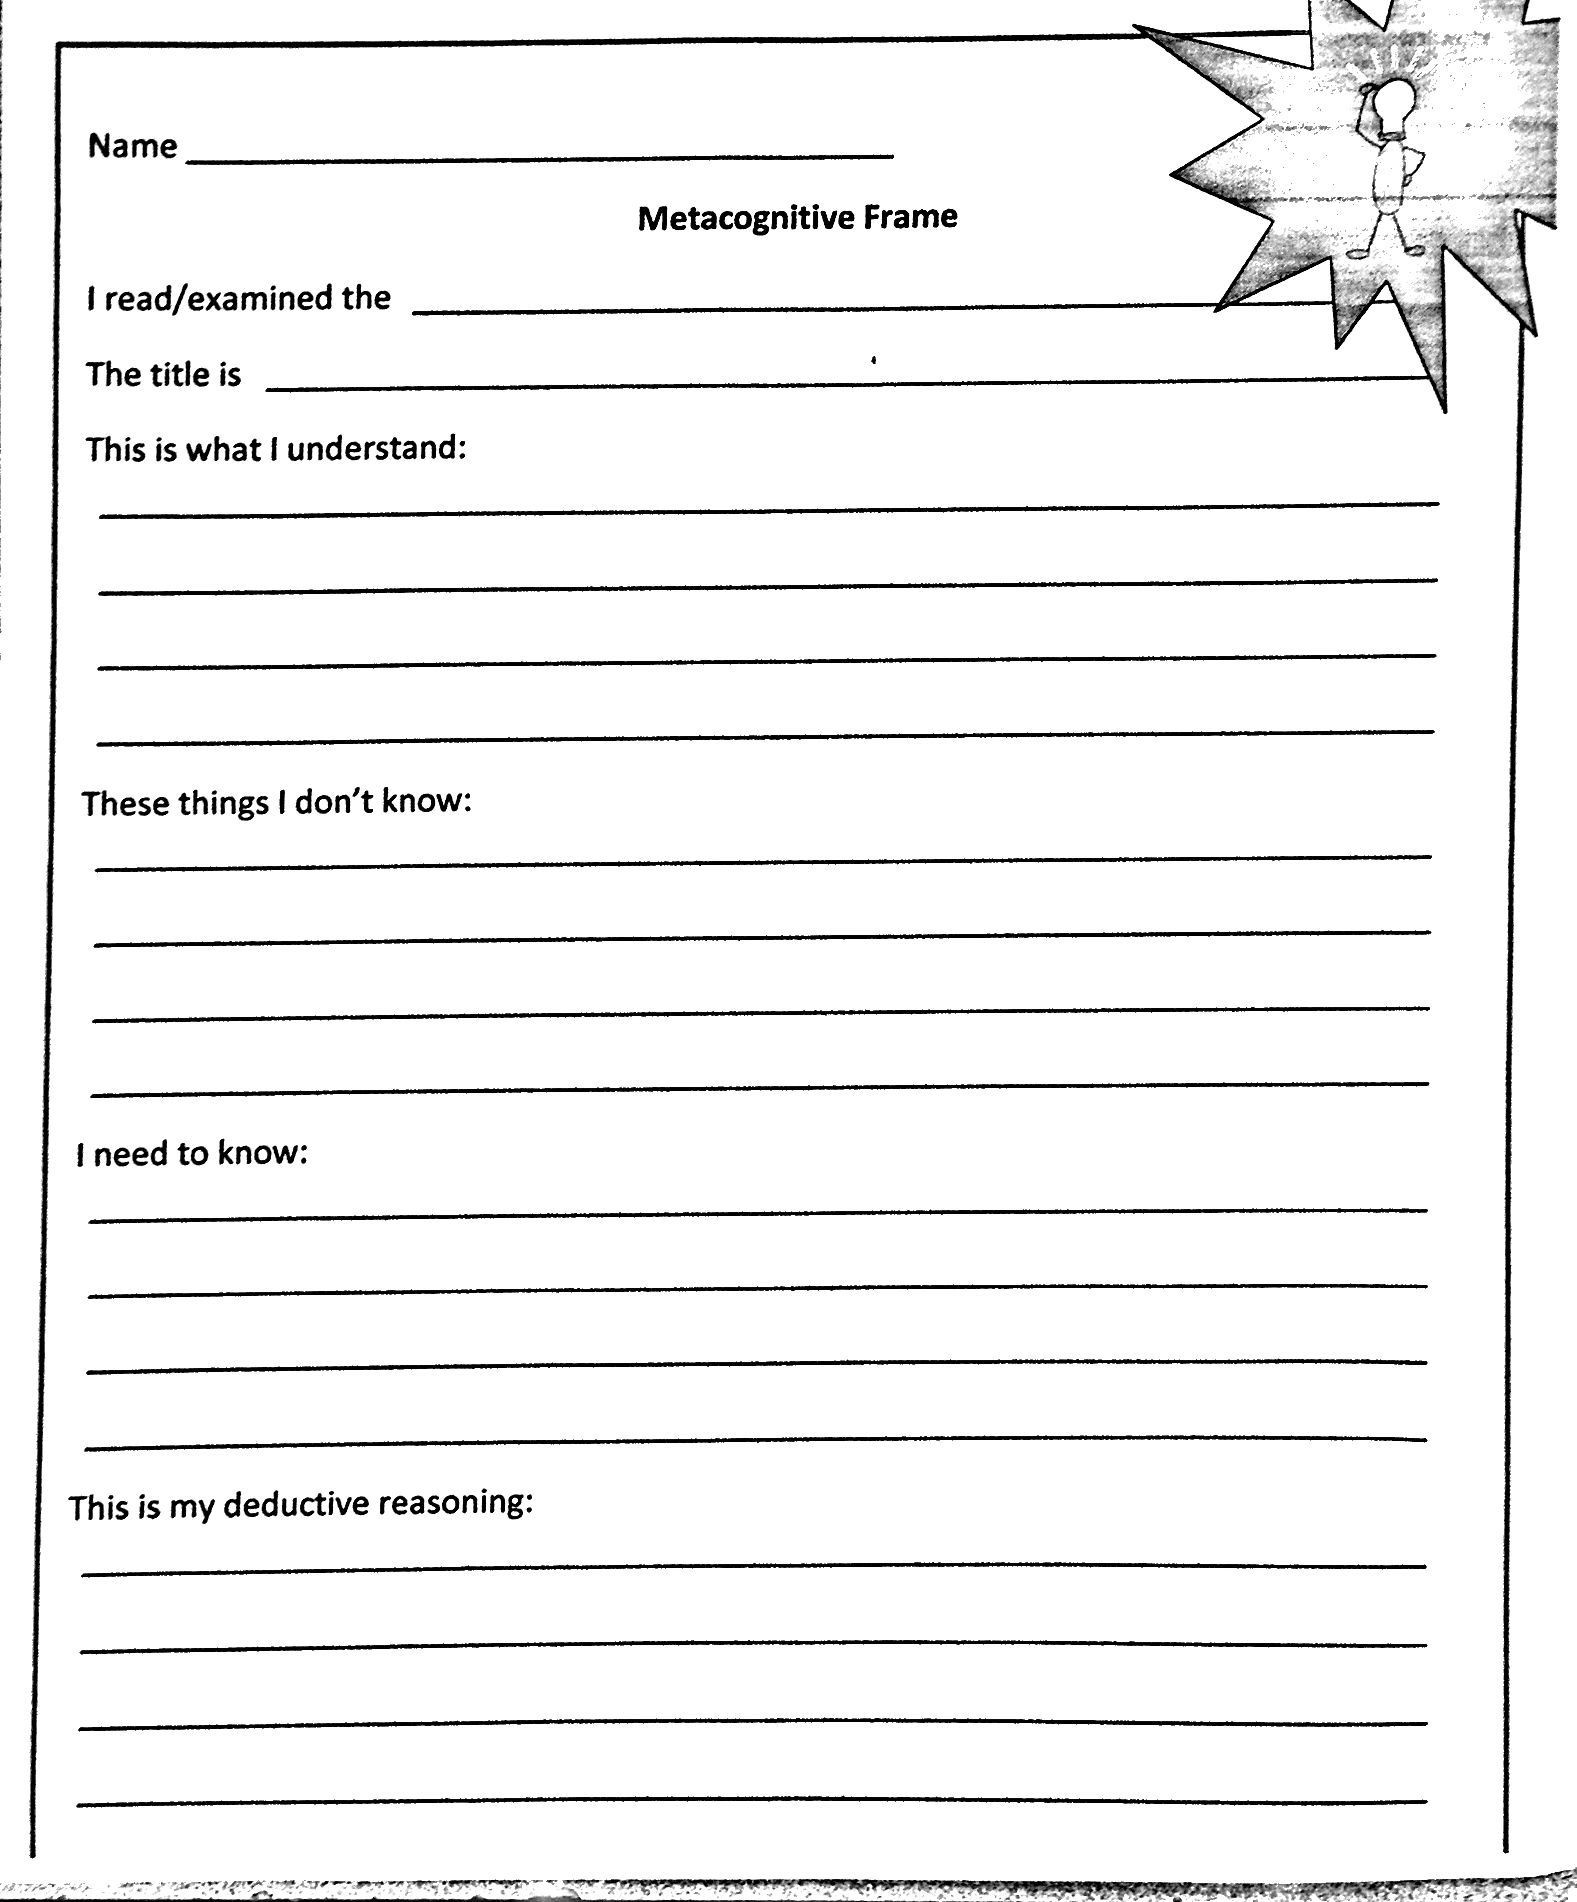 Social Studies Worksheets 6th Grade social Stu S Skills